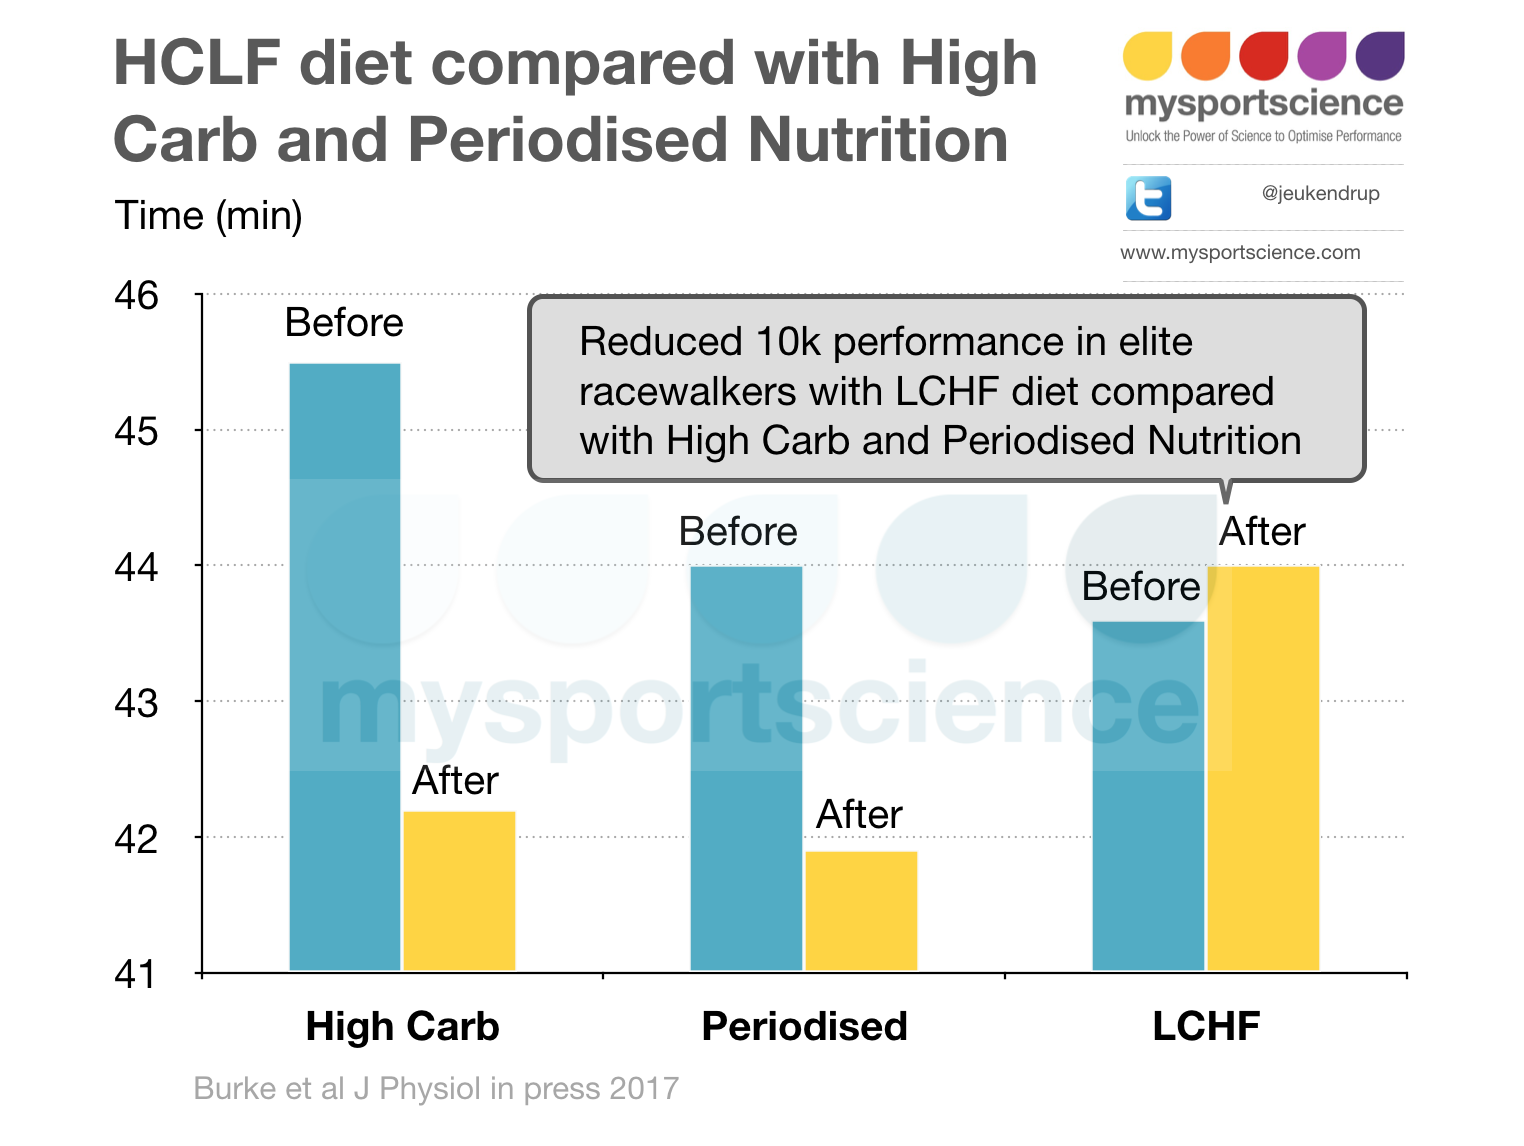 Paleo diet compared with LCHF